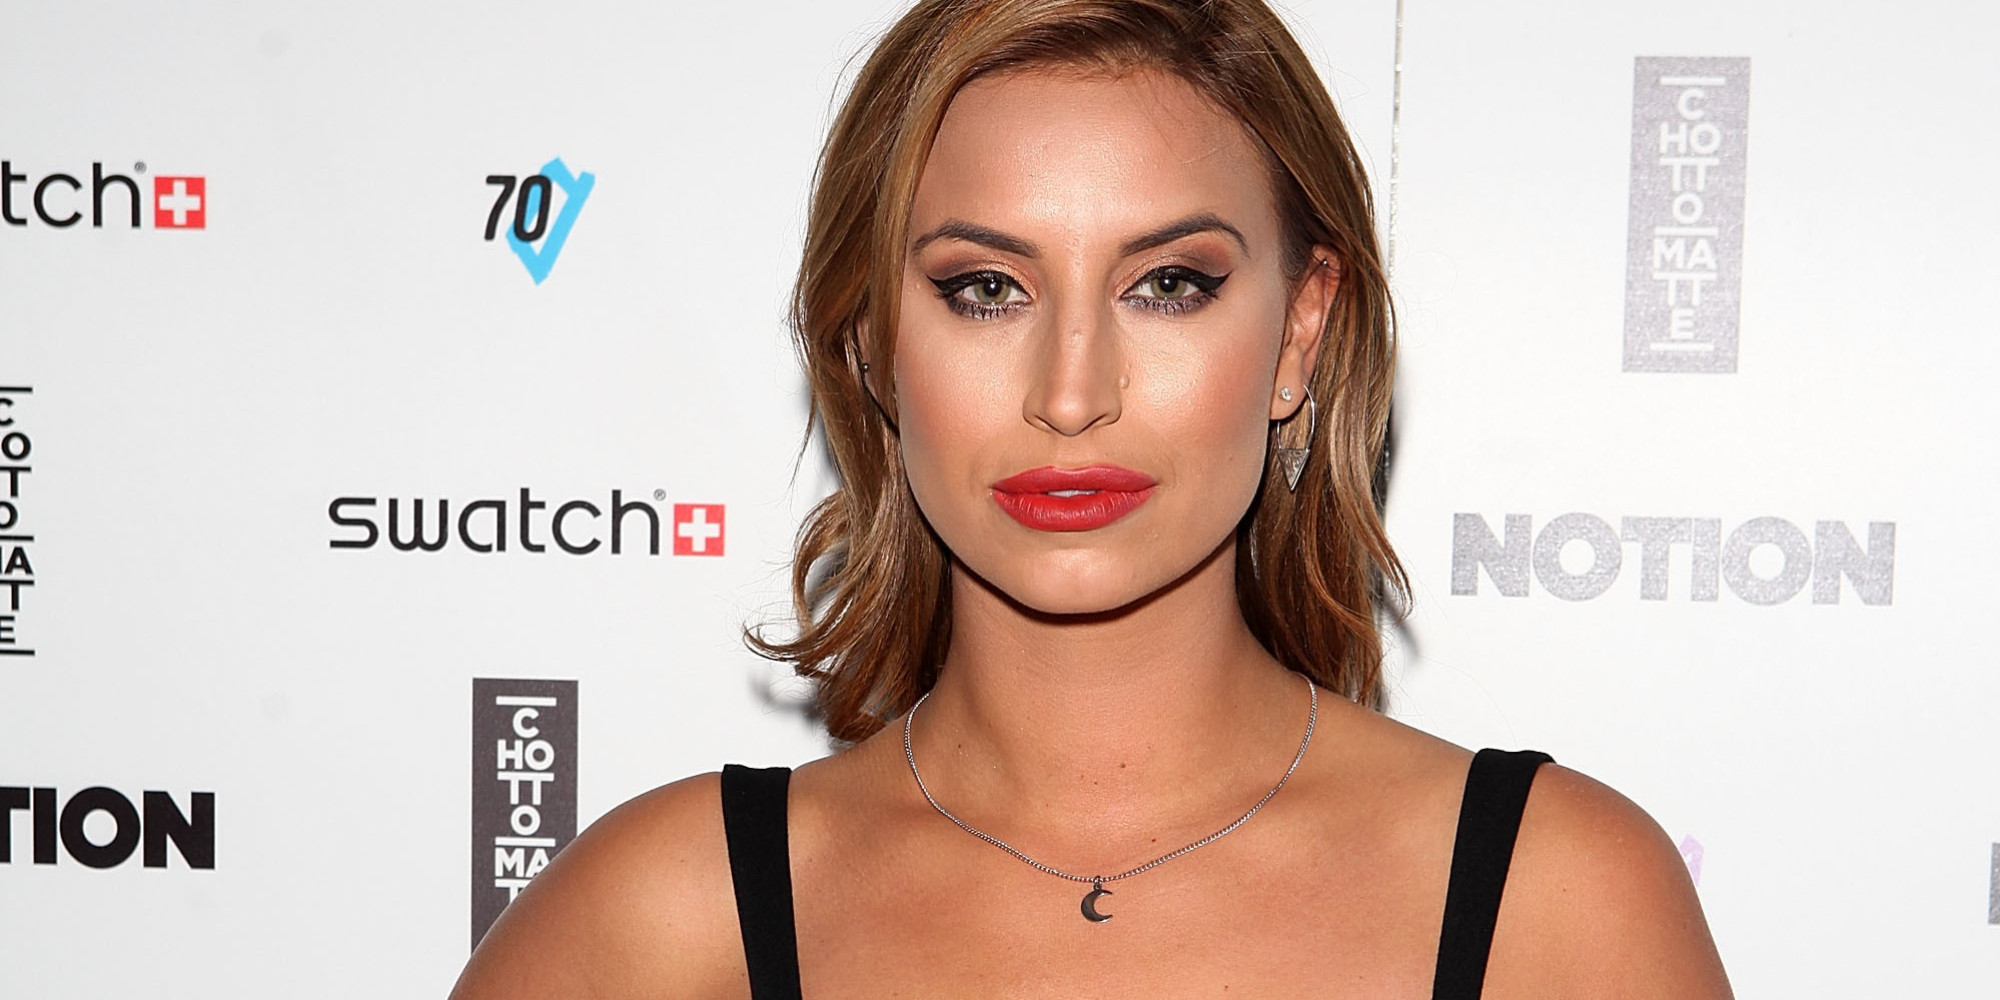 LONDON, ENGLAND - SEPTEMBER 09: Ferne McCann attends the Notion Magazine X Swatch Issue 70 launch party at Chotto Matte on September 9, 2015 in London, England. (Photo by David M. Benett/Dave Benett/Getty Images)